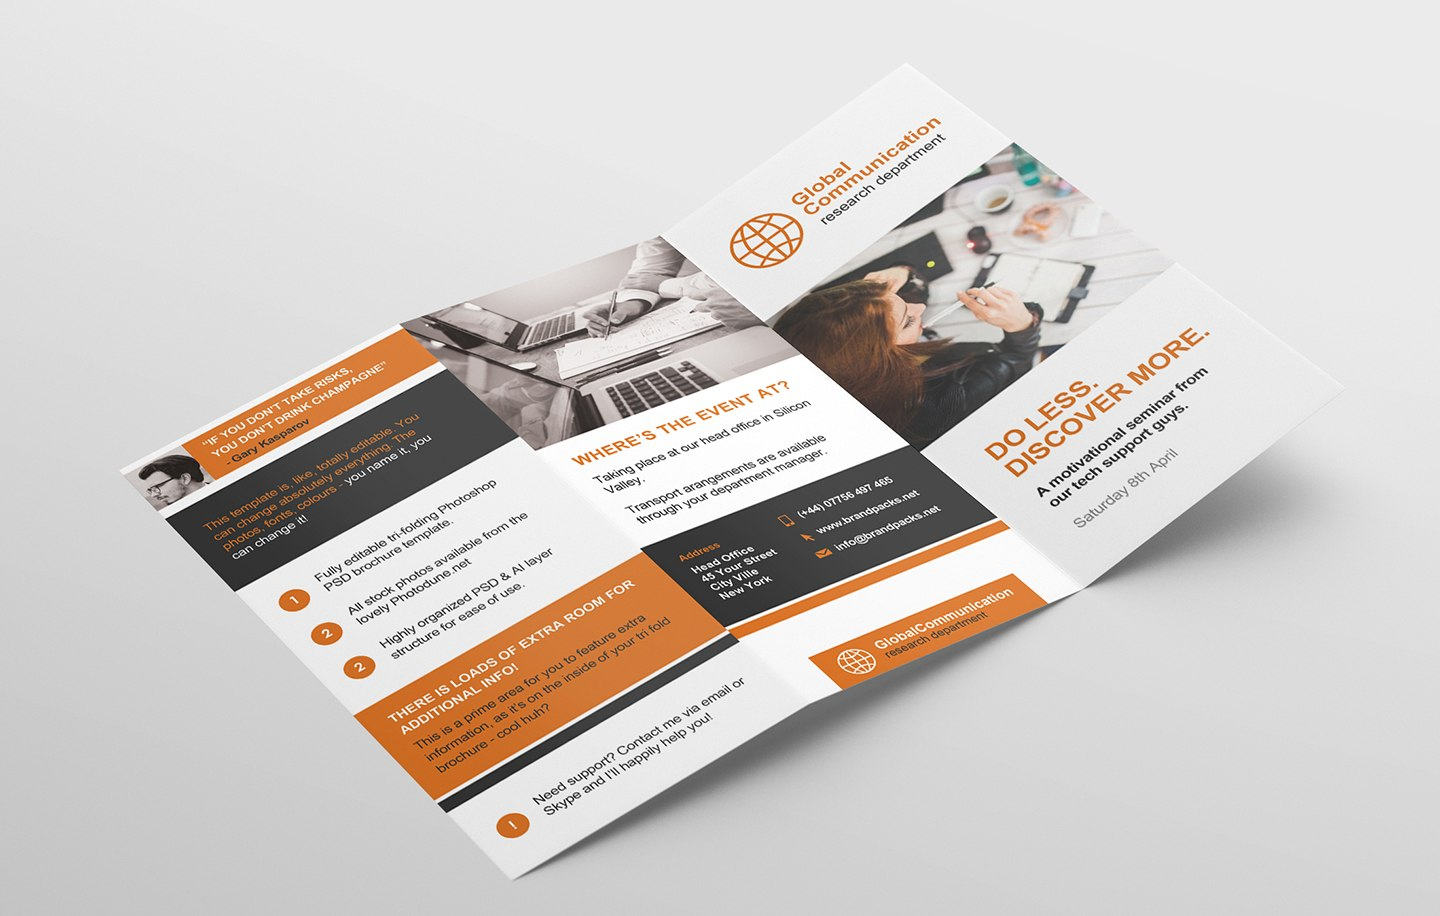 Free Fold Brochure Template For Photoshop  Illustrator  Brandpacks With Regard To 3 Fold Brochure Template Free